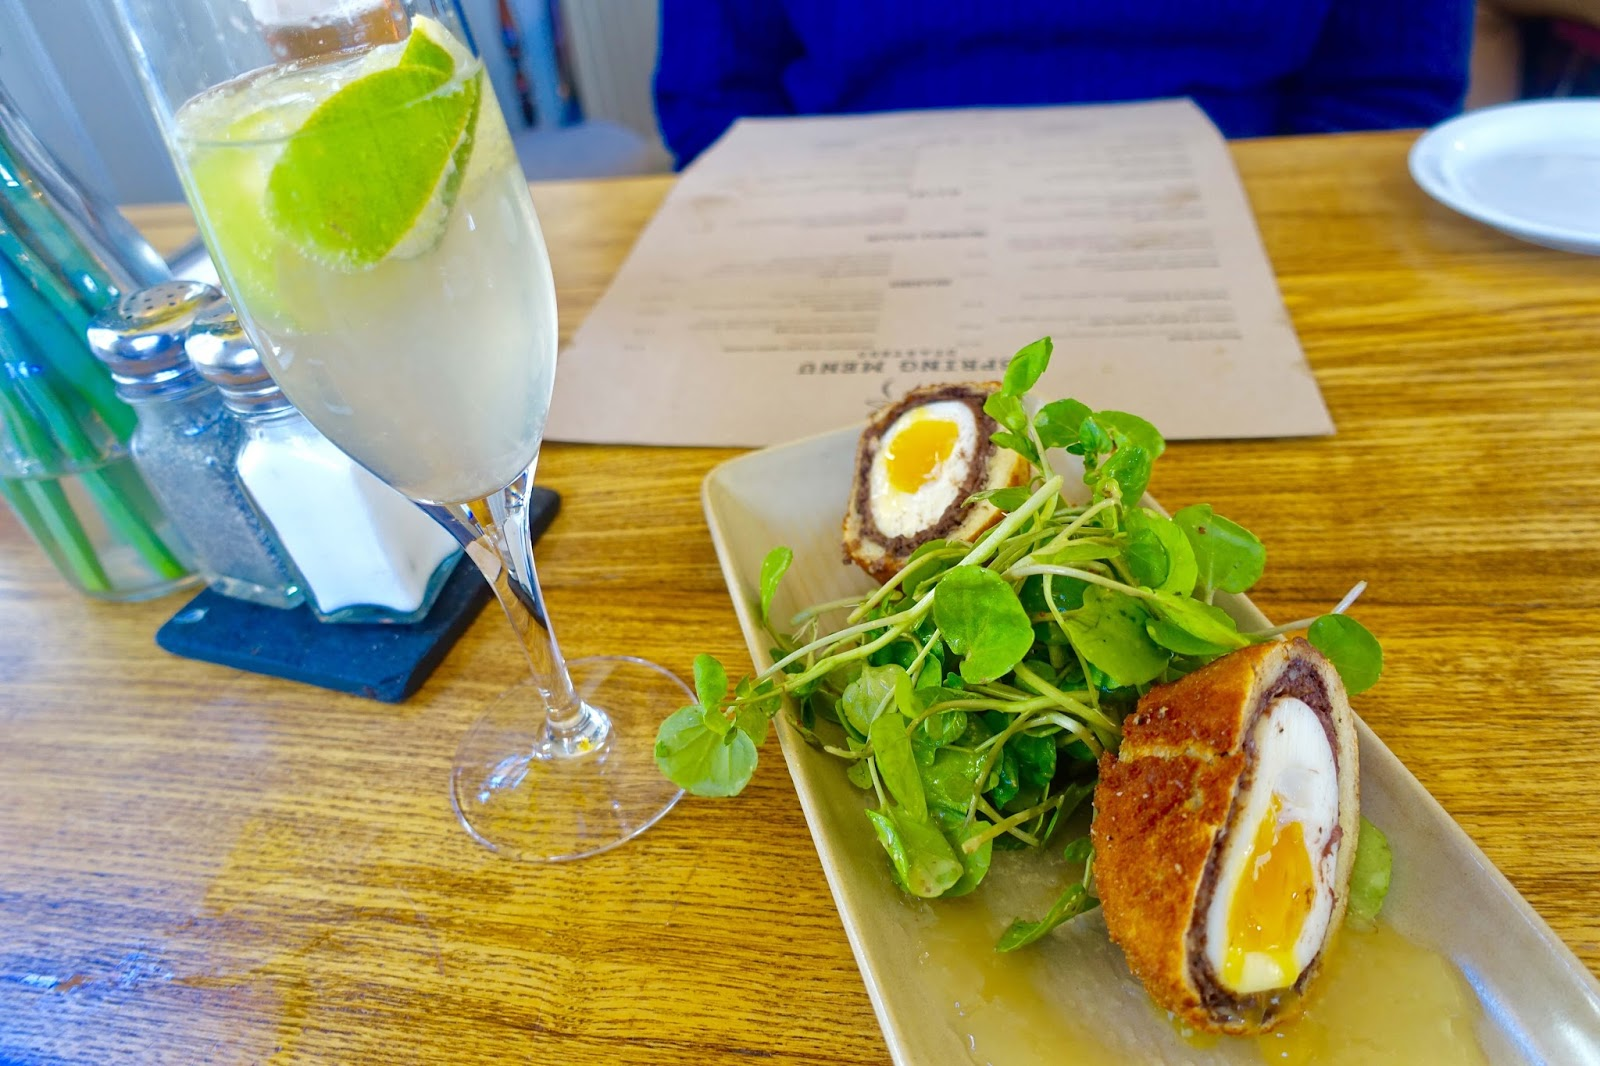 pork and black pudding scotch egg with cress and apple sauce